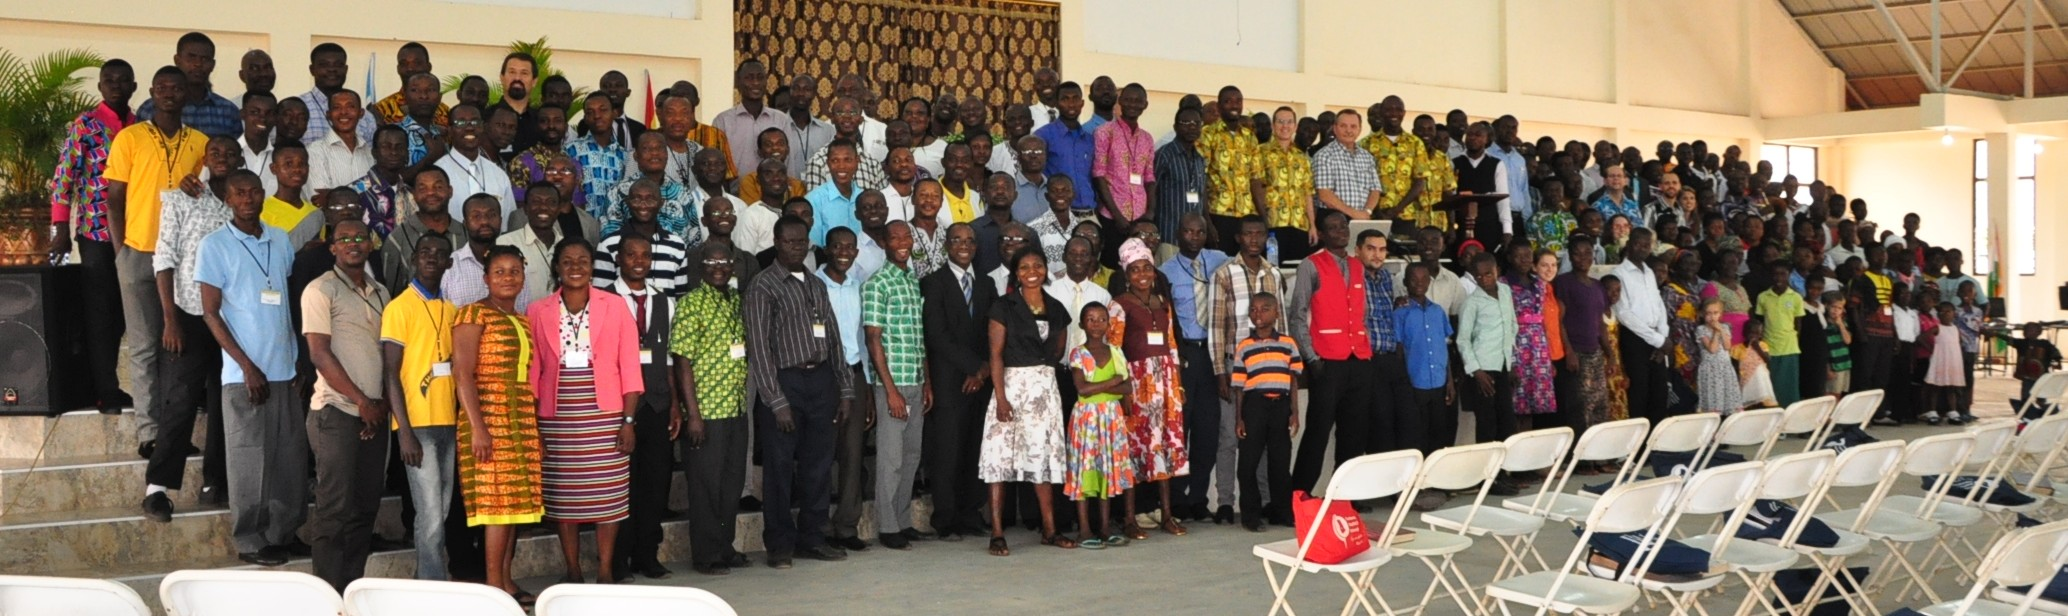 Delegates to Our 2015 Pastors' and Workers' Conference